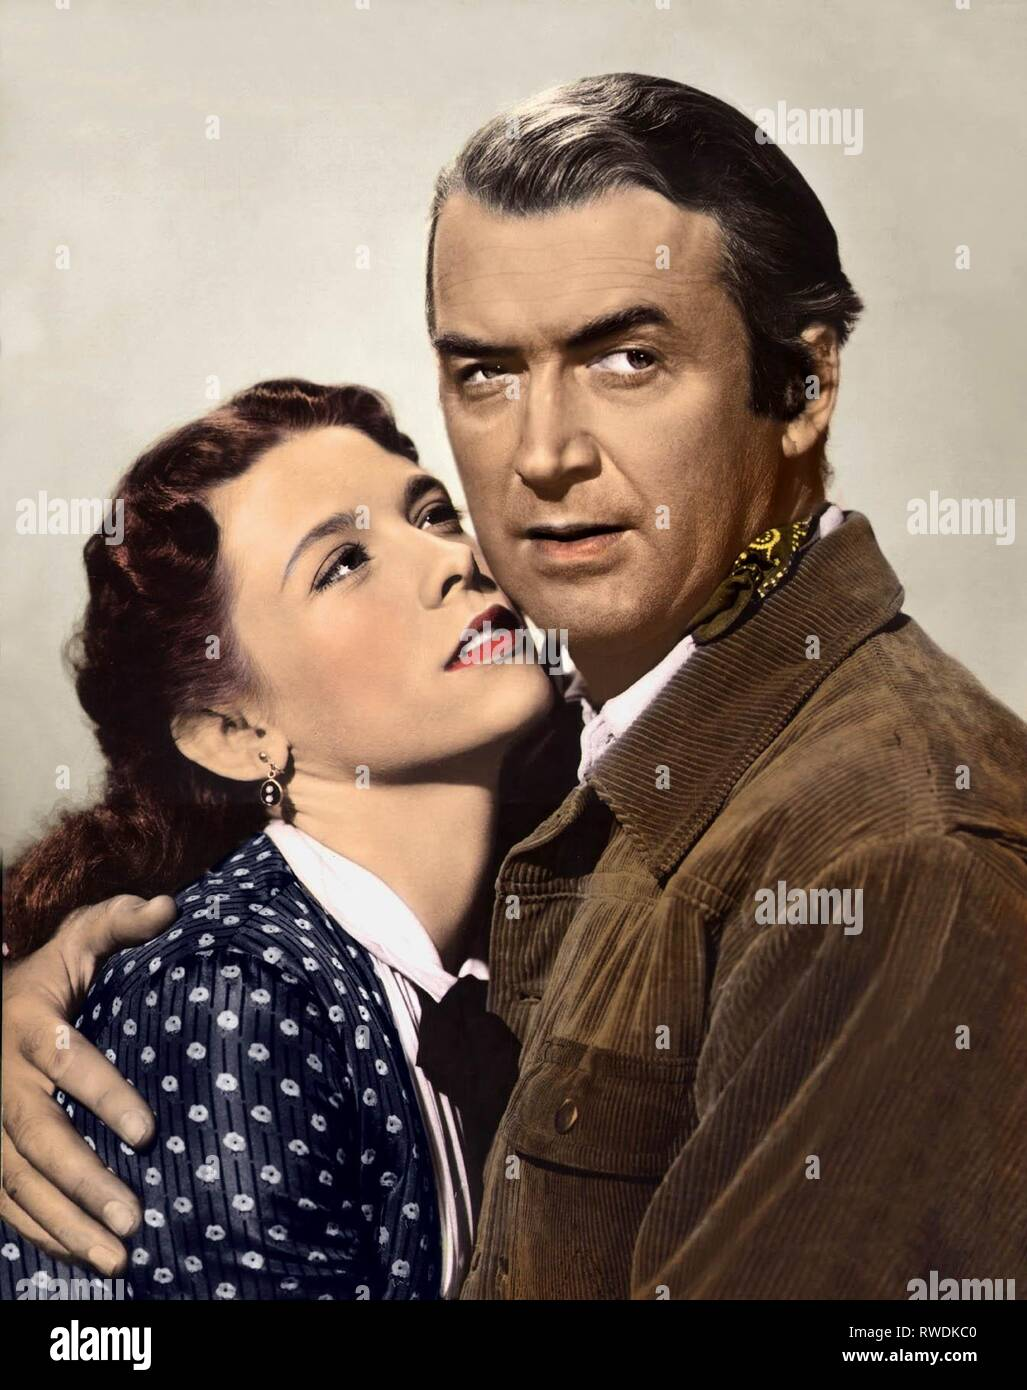 O'DONNELL,STEWART, THE MAN FROM LARAMIE, 1955 - Stock Image